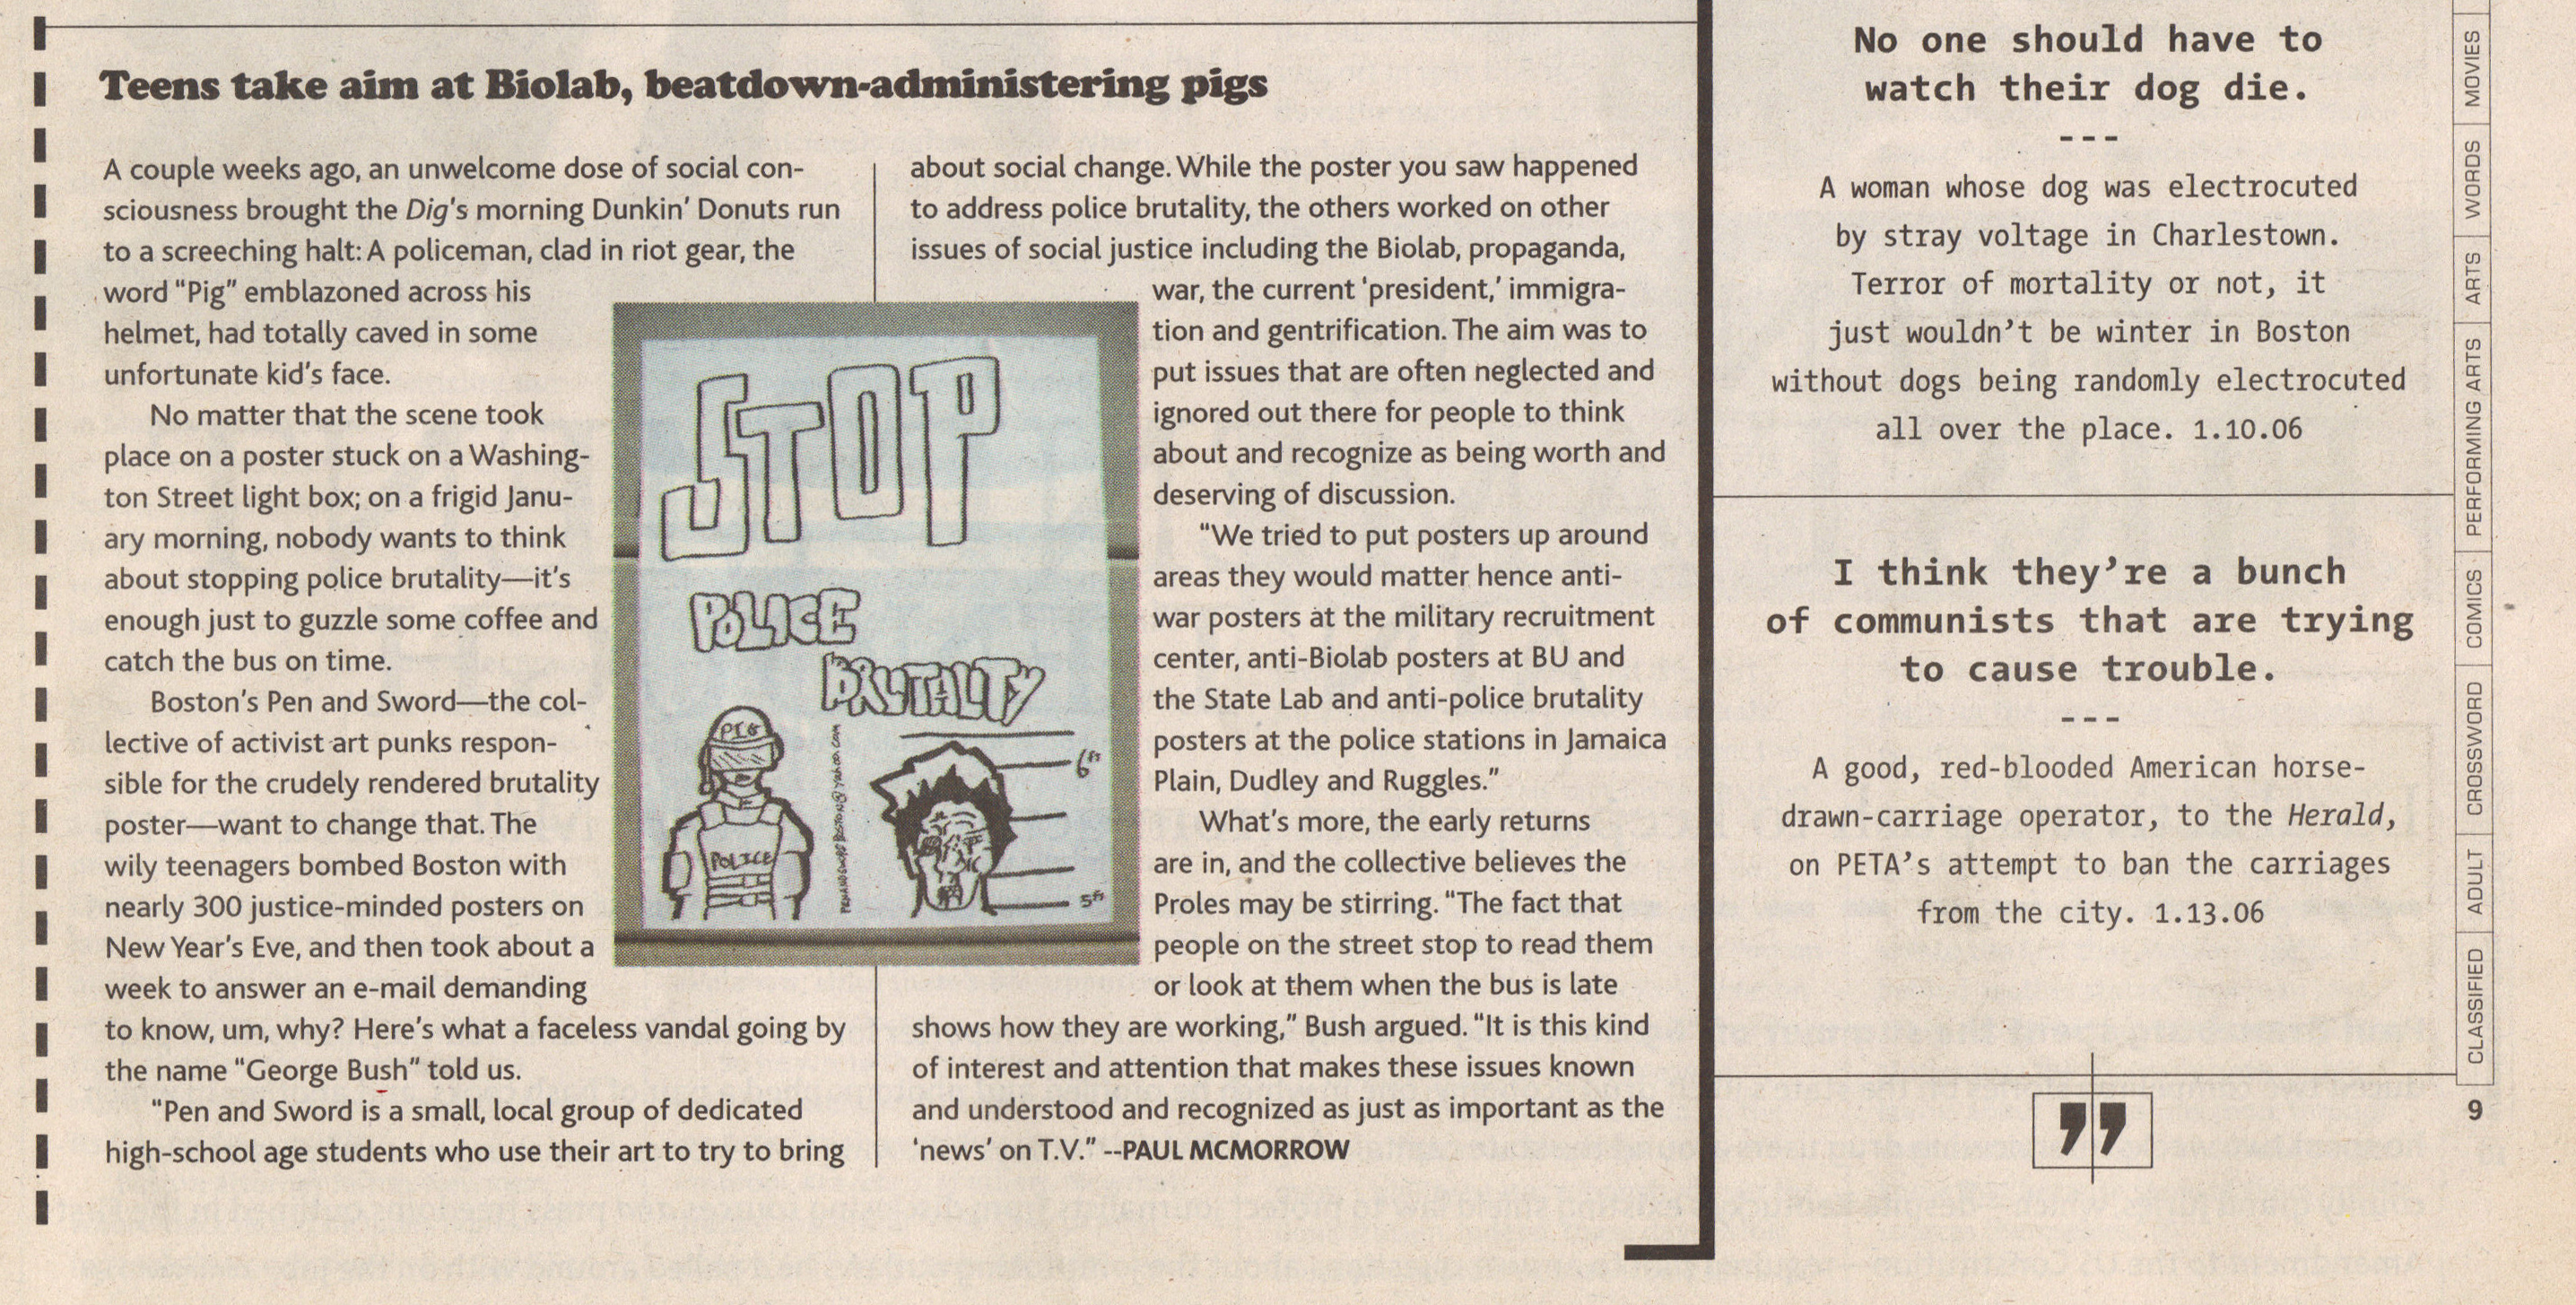 Teens take aim at biolab, beatdown-administering pigs - By Paul McMorrow - Weekly Dig